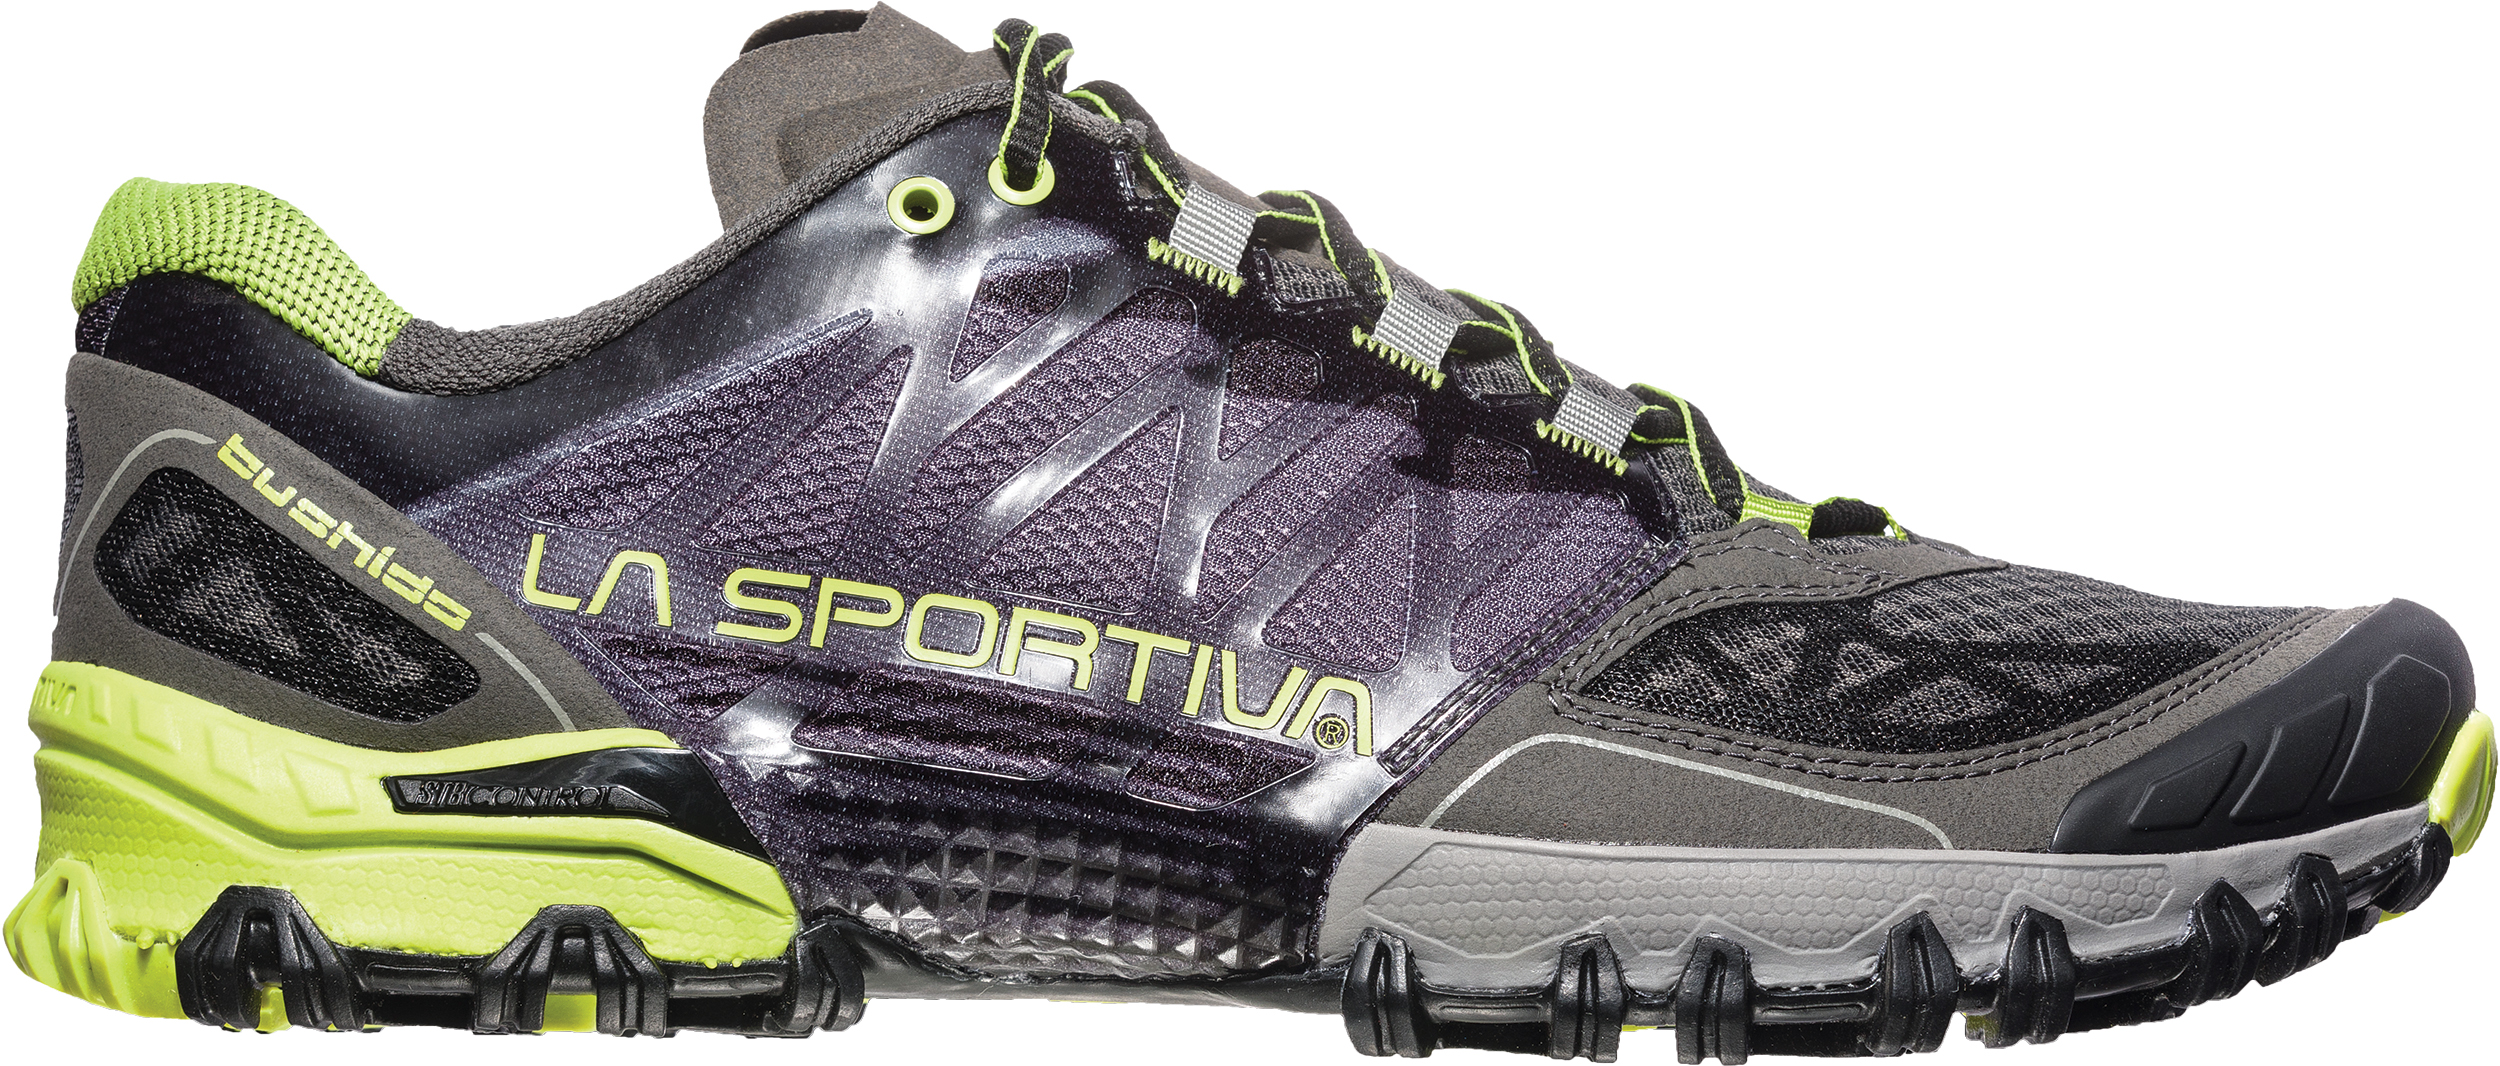 Course Chaussures Course Sportiva Chaussures De La De Sportiva La De Course Chaussures sdtrhQC